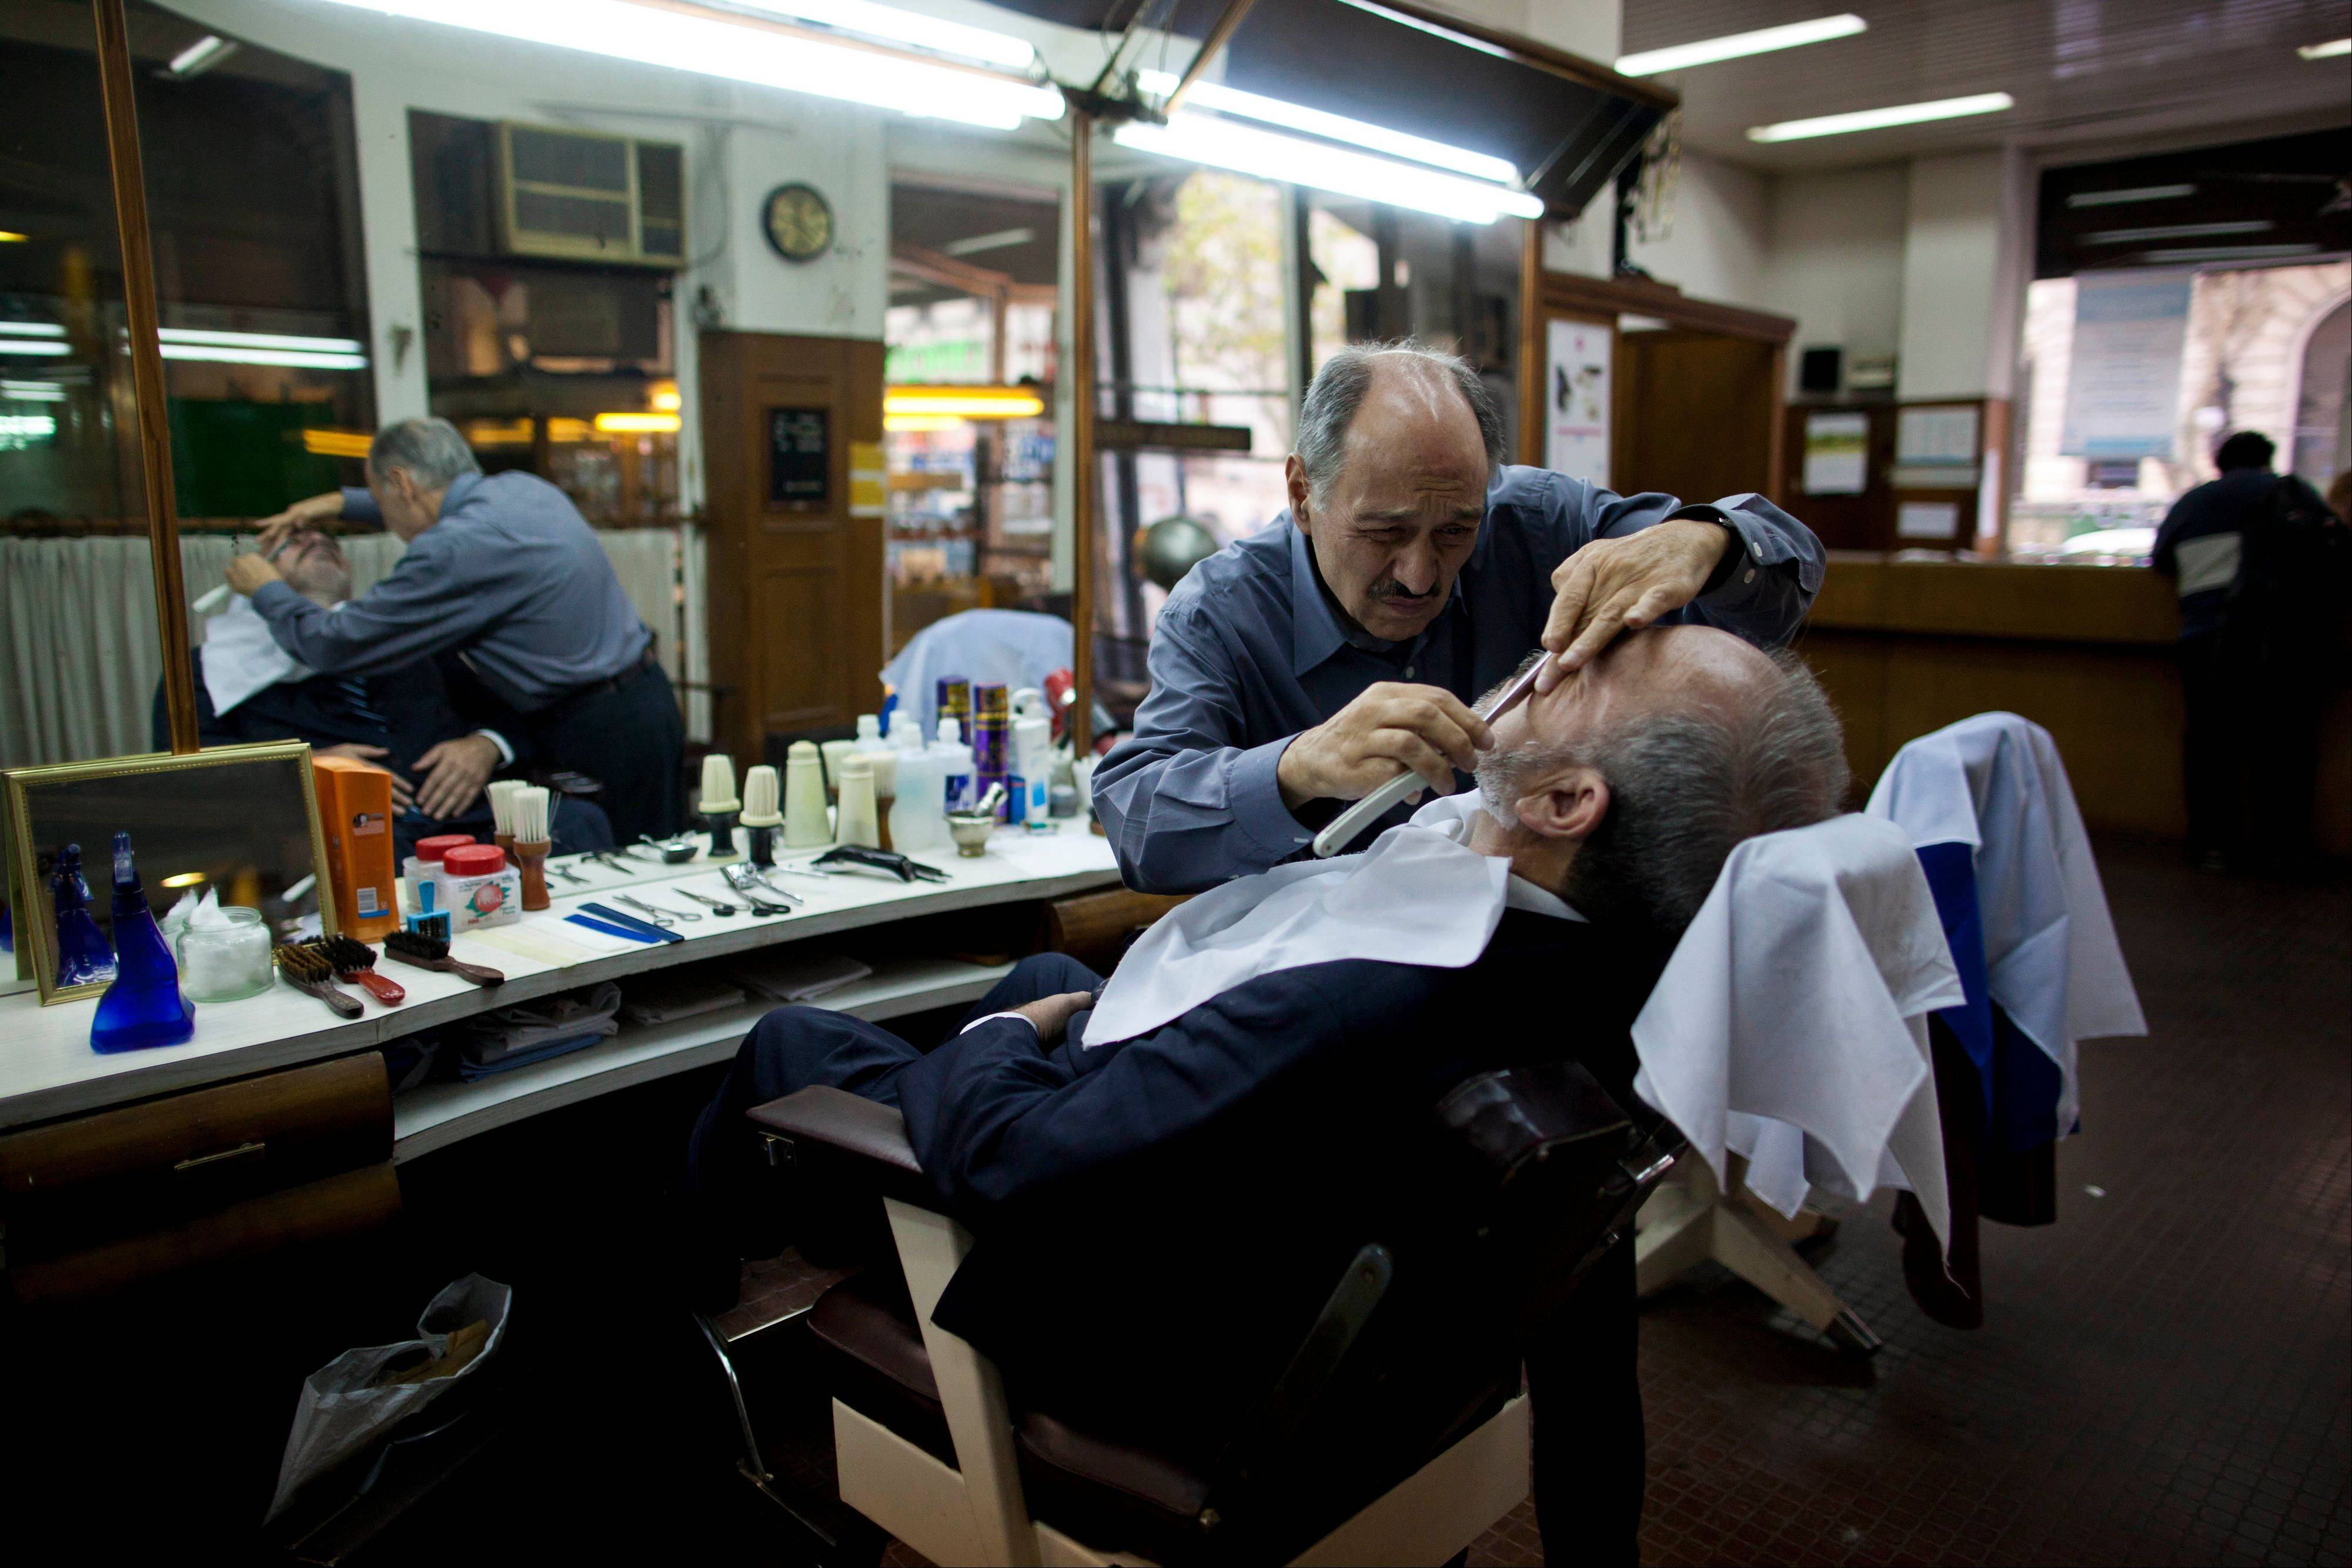 Barber Mario Saliche shaves a customer at the Romano hairdresser and barber shop in Buenos Aires. Guided tours include the barber shop, where Archbishop Jorge Bergoglio had a monthly haircut for 20 years.